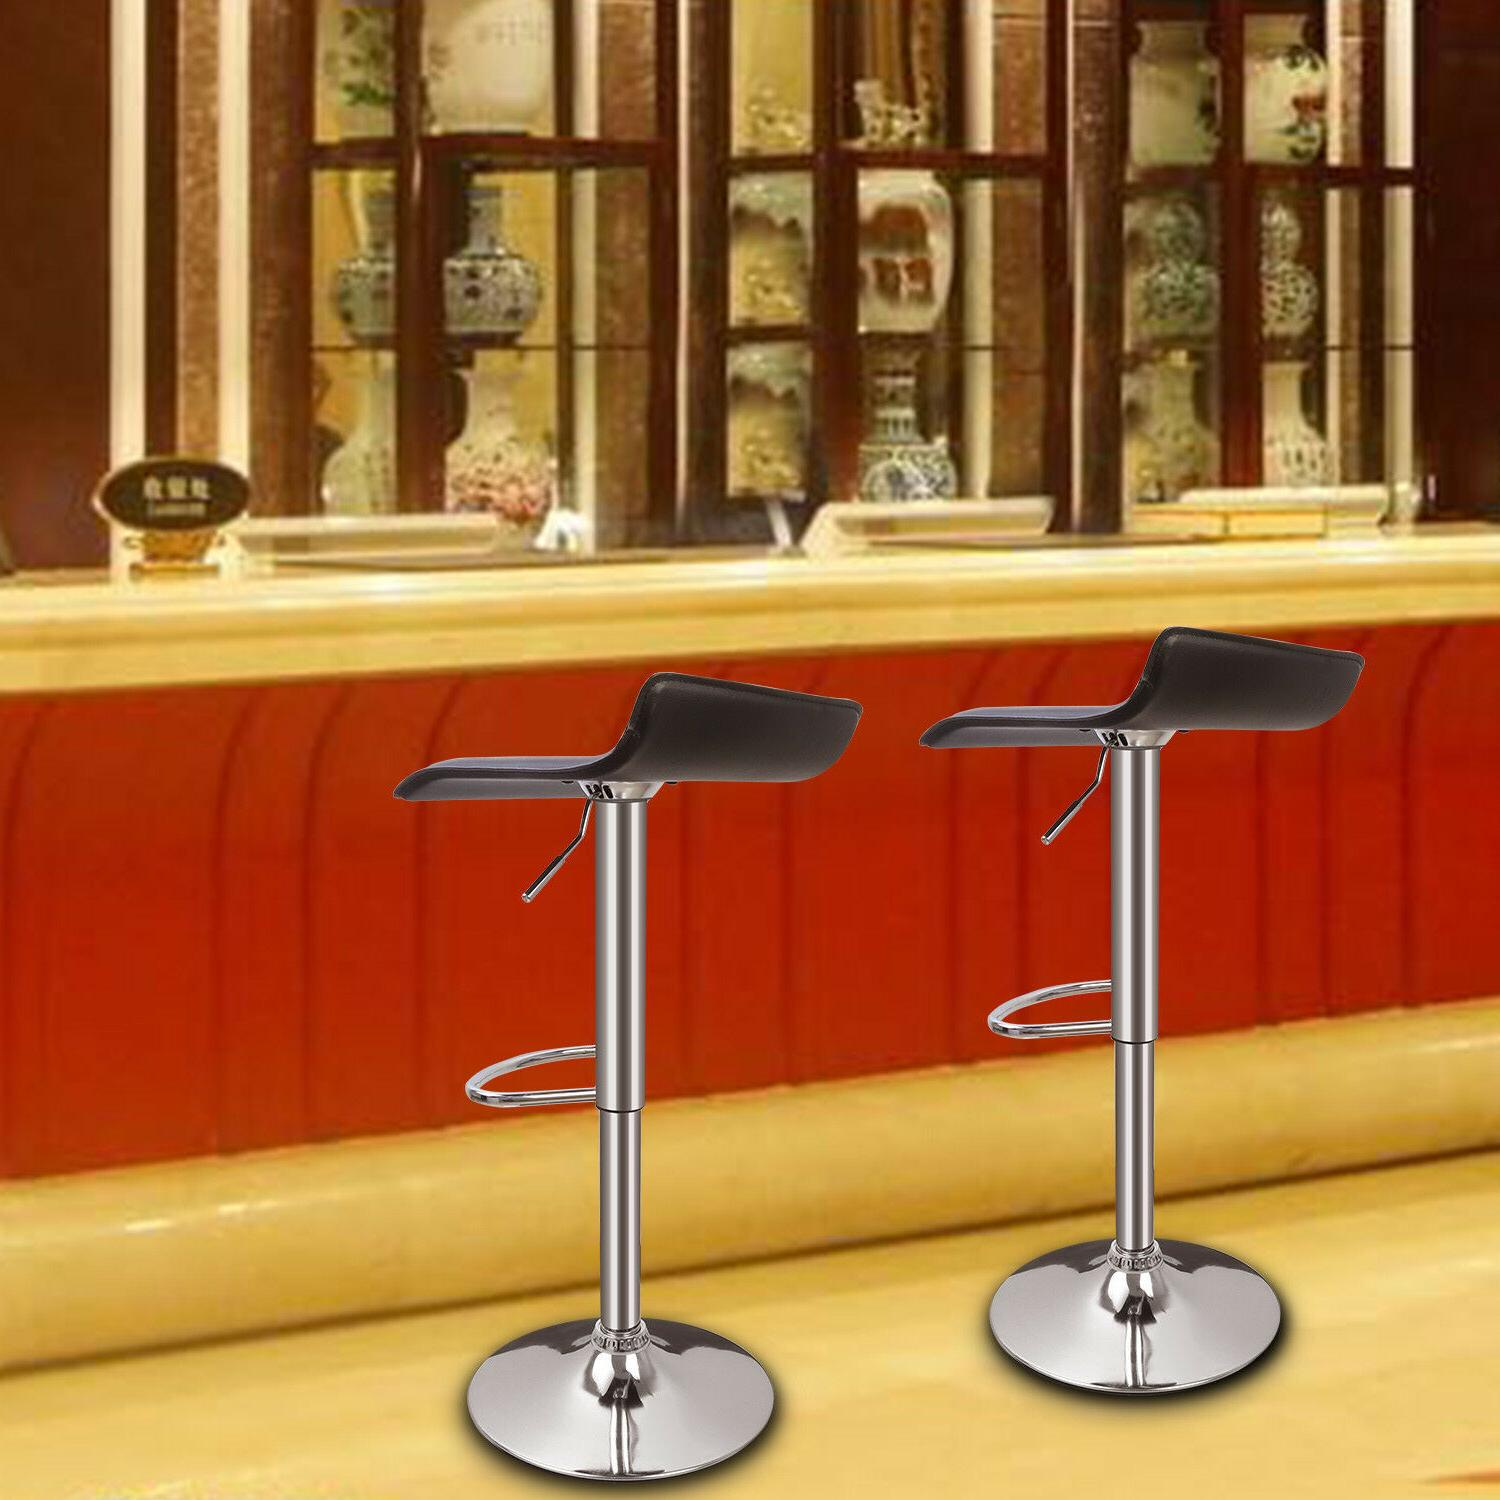 2 PCS Stools Counter Height Chairs